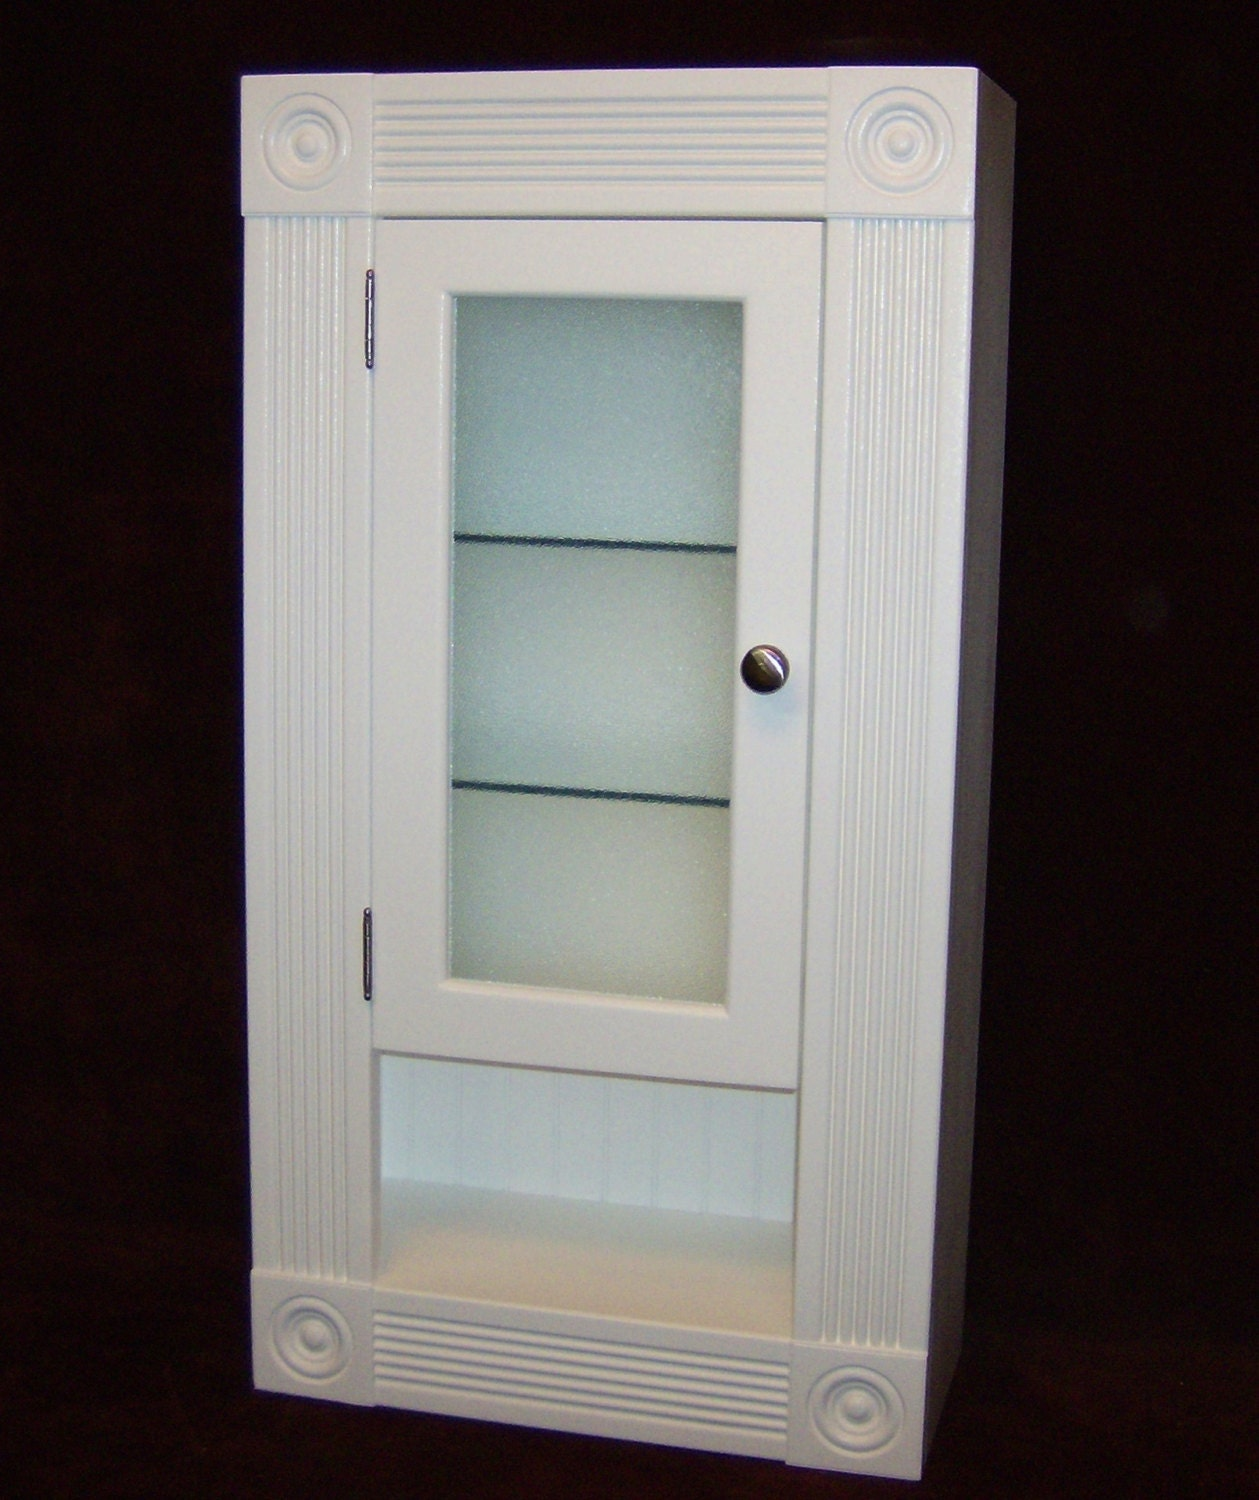 Bathroom Cubby Shelf: Victorian Style Bathroom Storage Cabinet With Cubby